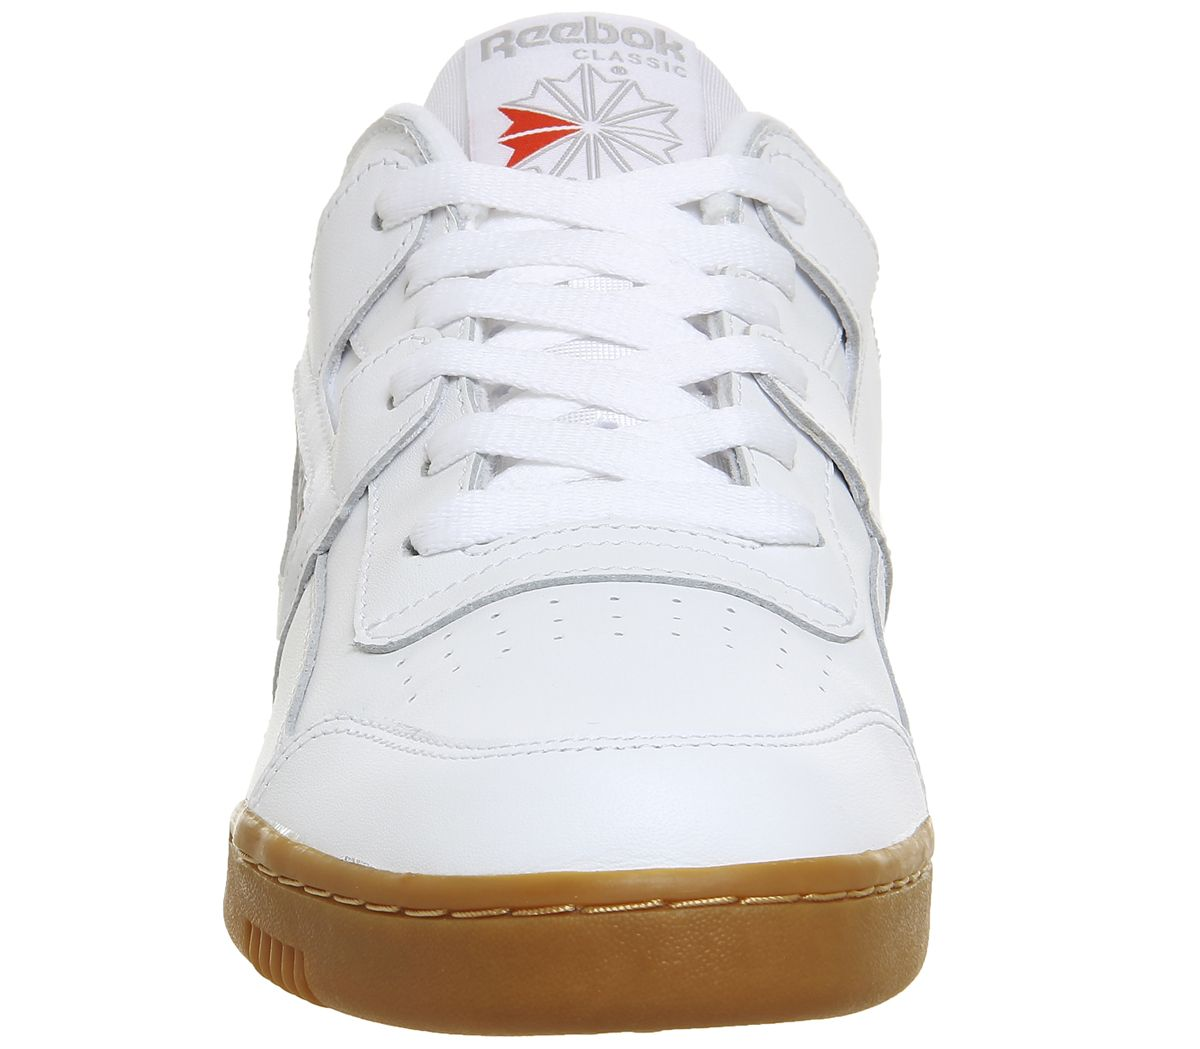 8a1b8820d8f9f Sentinel Reebok Workout Plus Trainers White Carbon Gum Trainers Shoes